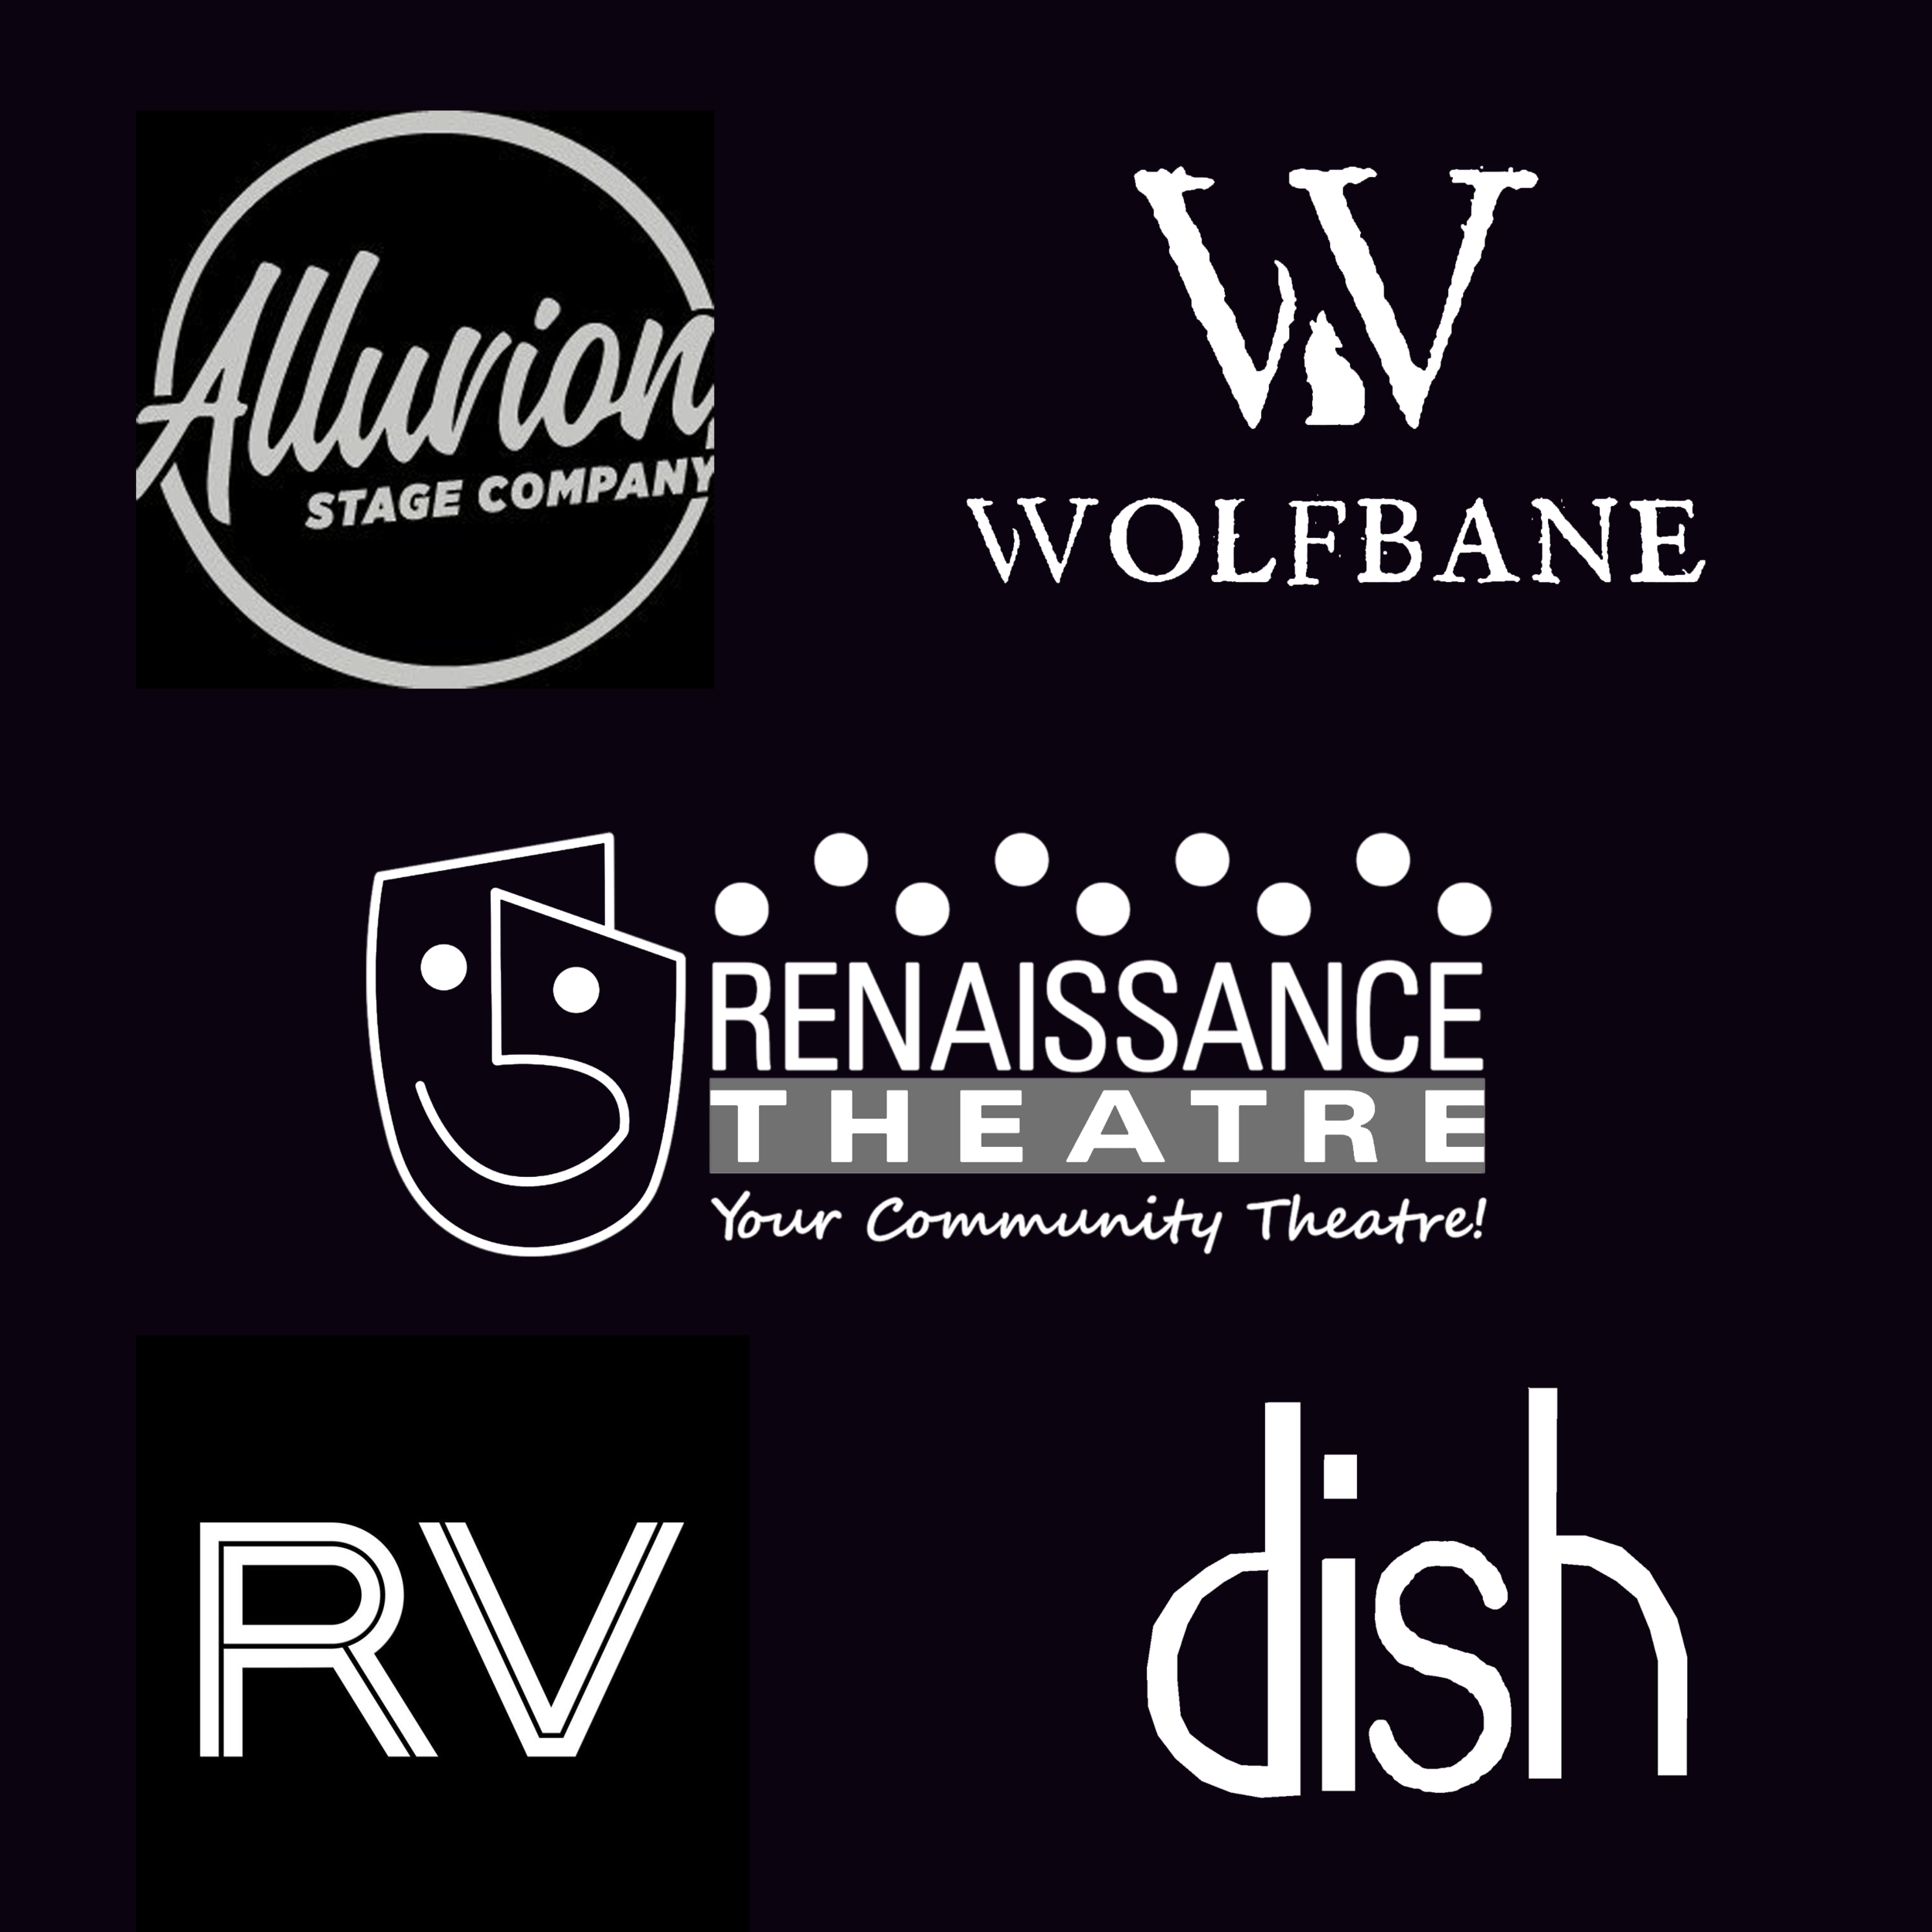 """""""Dinner and a Show"""" - Two (2) tickets to any Renaissance Theatre performanceTwo (2) tickets to any Alluvion Stage Company performanceTwo (2) tickets to opening night performance of Wolfbane's """"Cabaret""""Dish gift card $50.00Rendez-Vous gift card $50.00"""